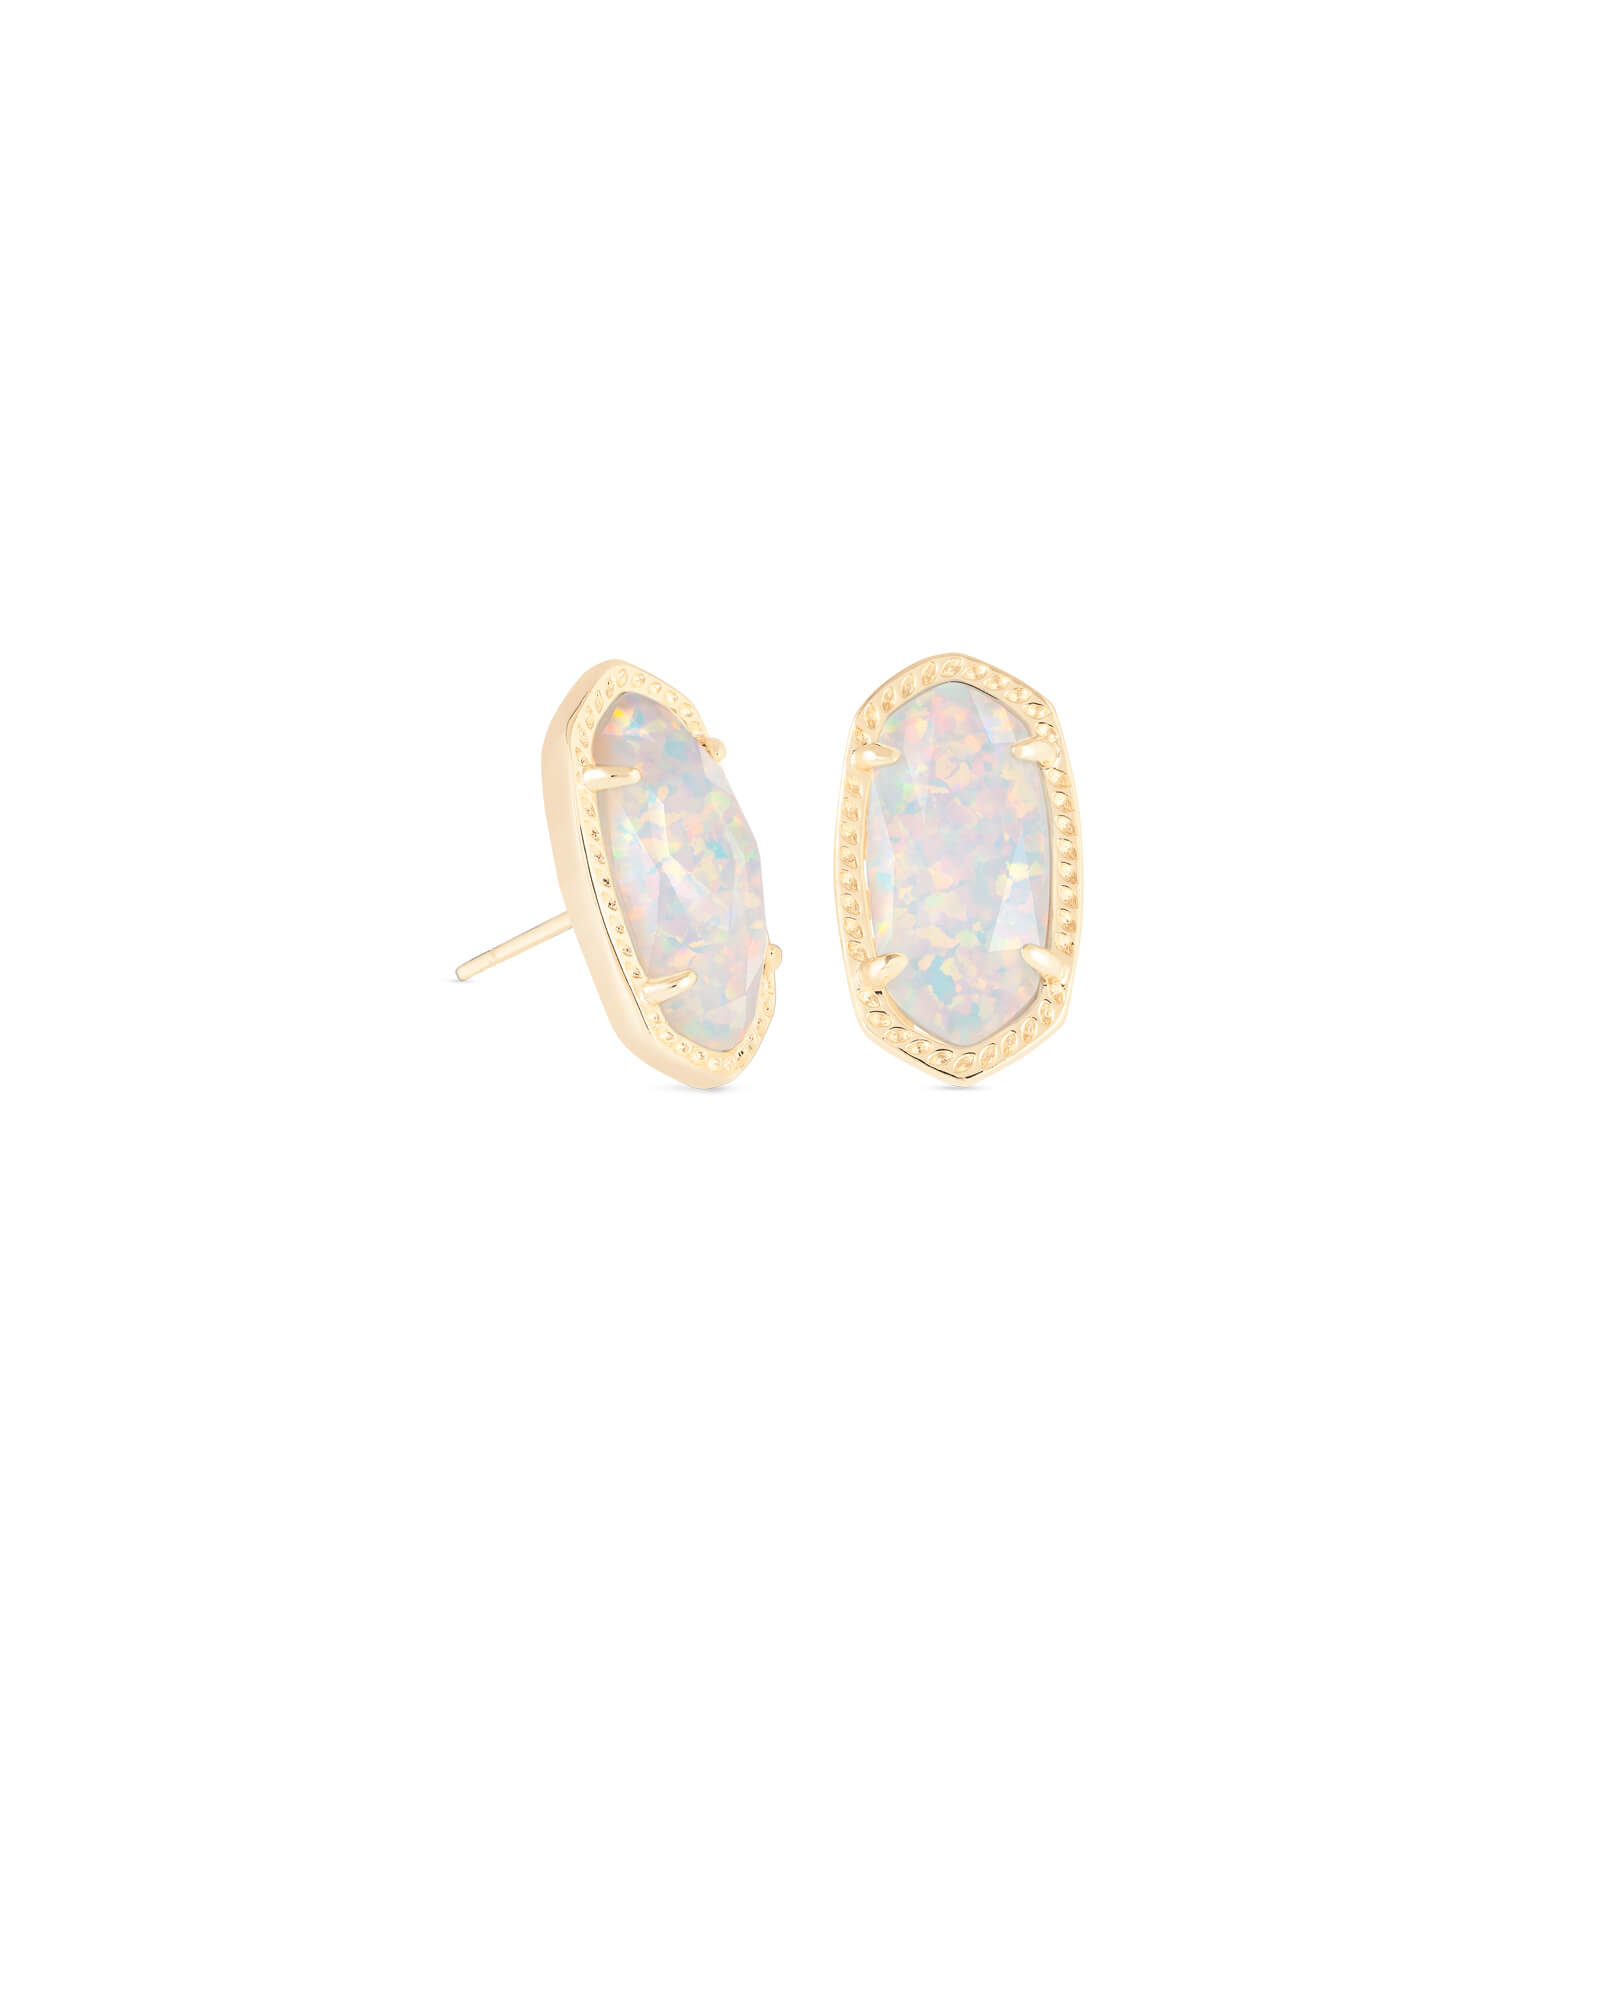 teardrop inspirational of trifari lovely tone gold stud beautiful sterling clip silver turquoise opal on genuine earrings